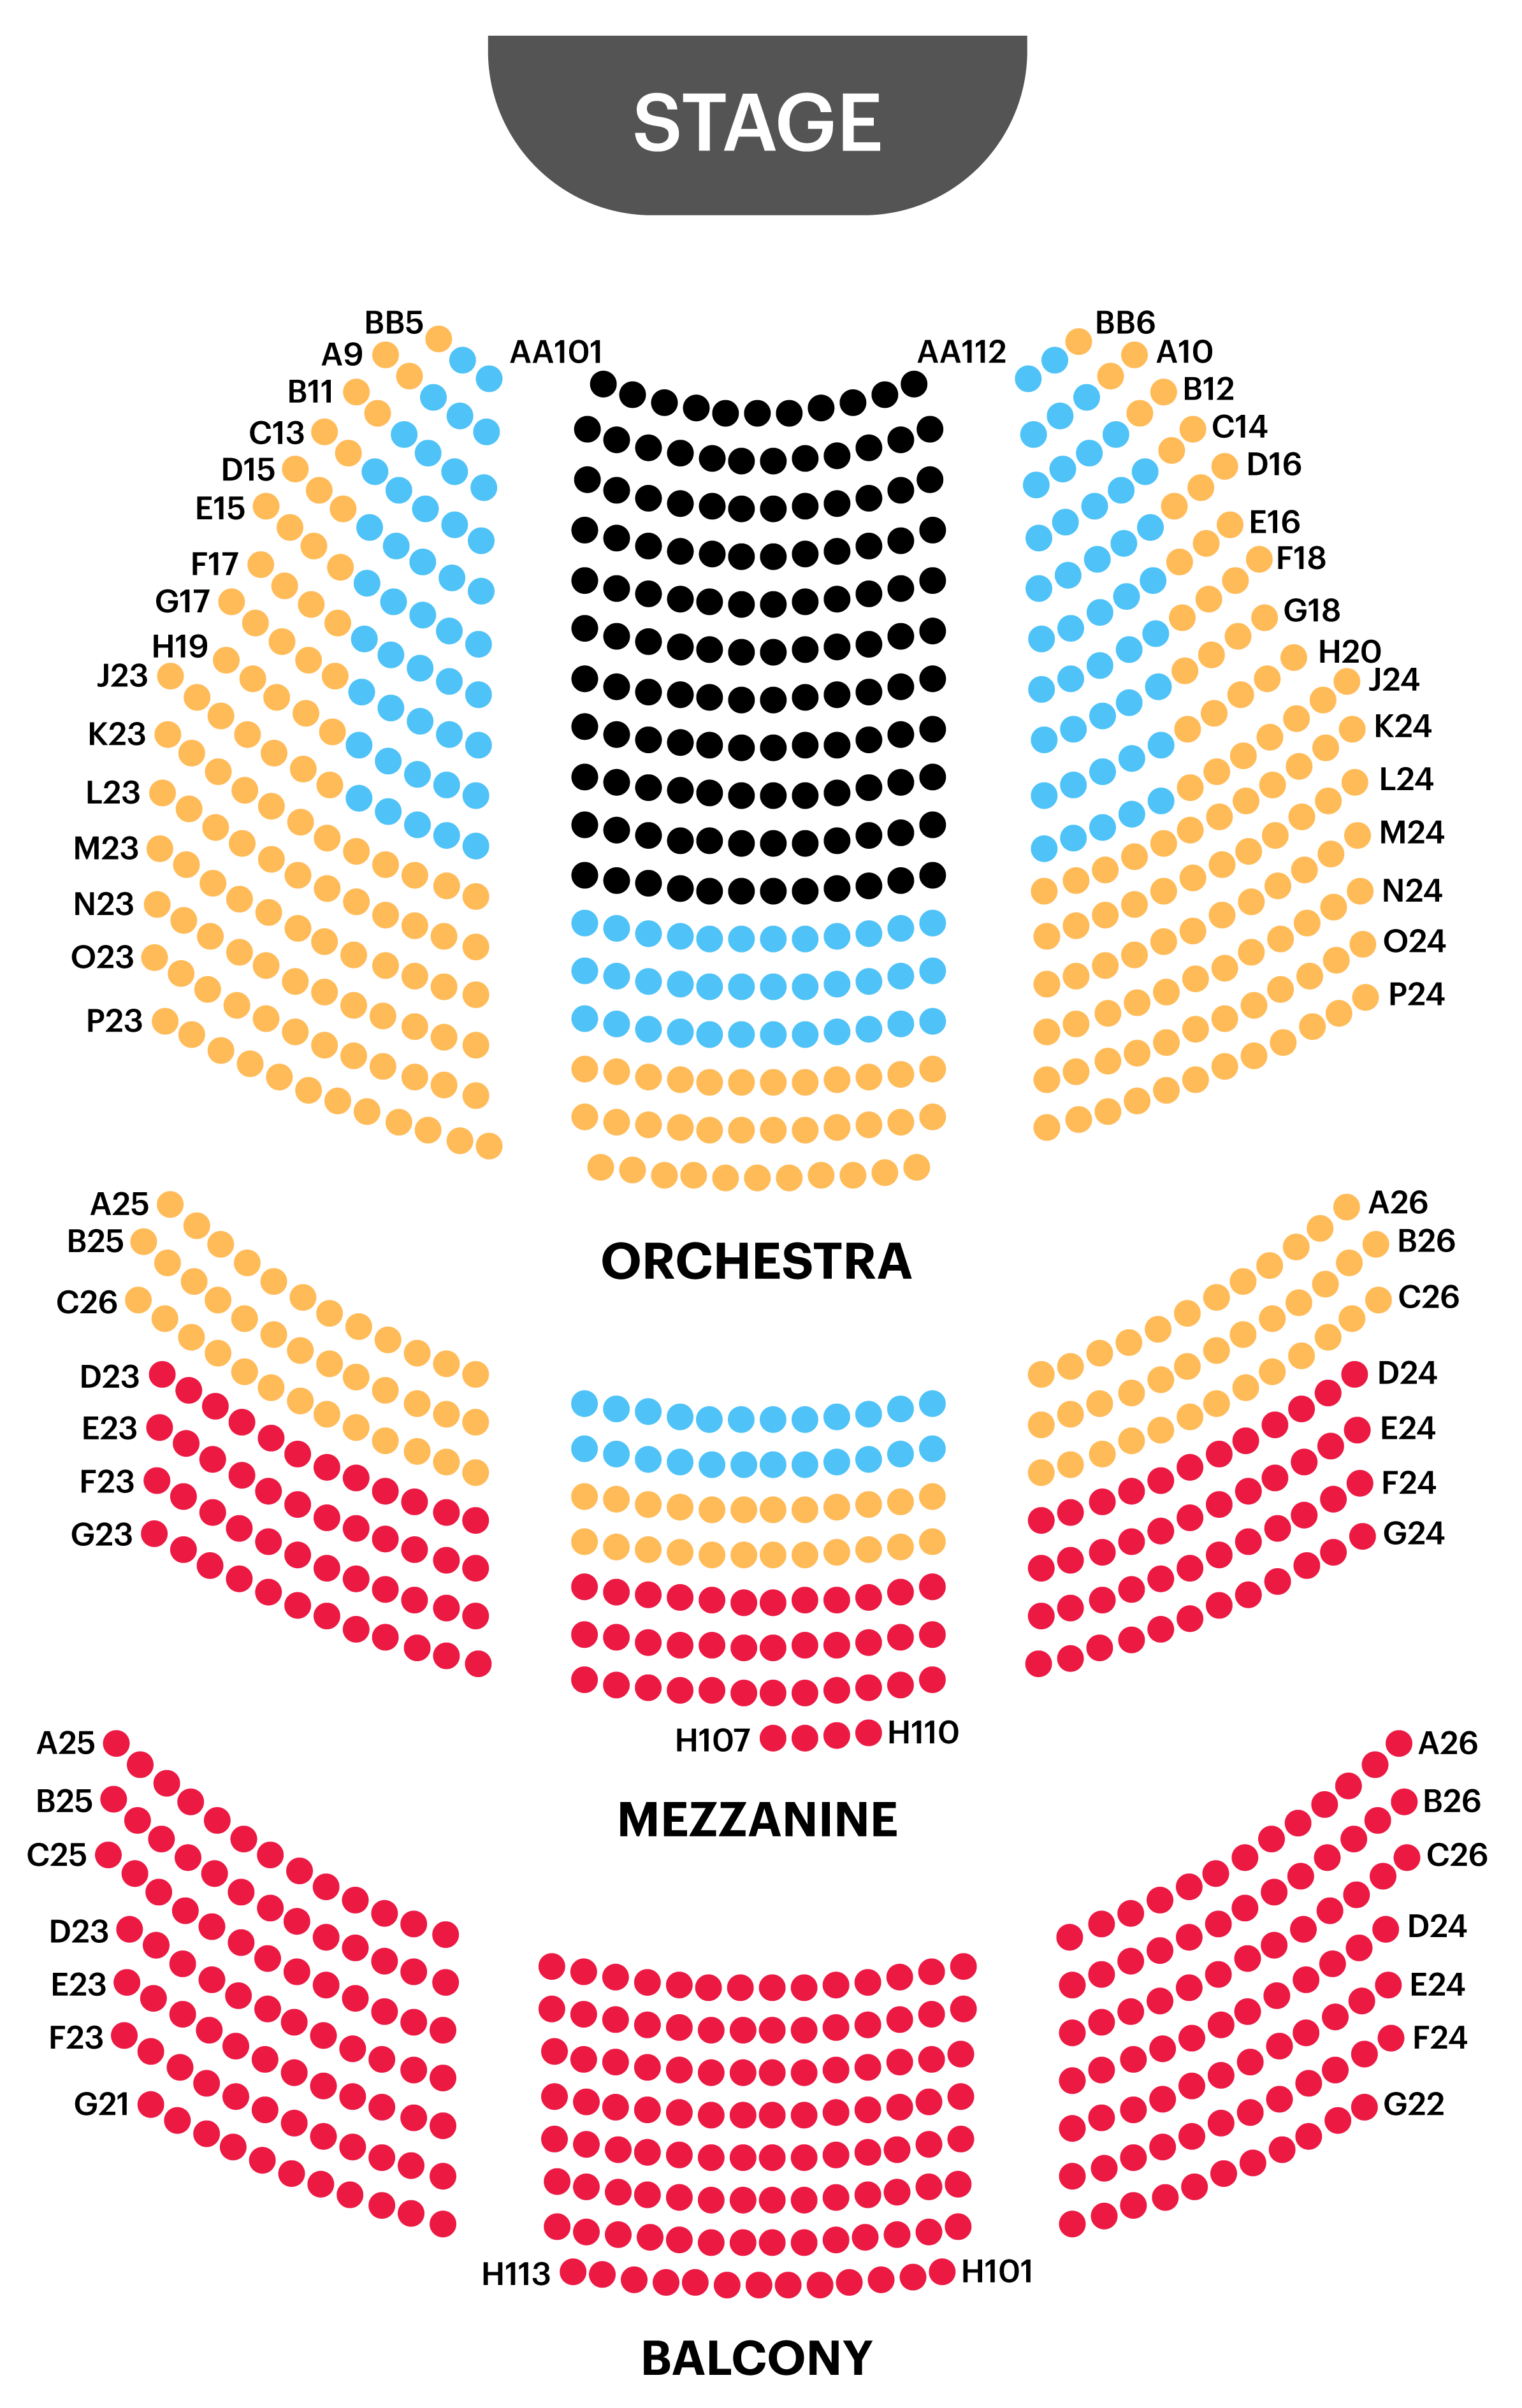 Cort Theatre Seating Chart Map